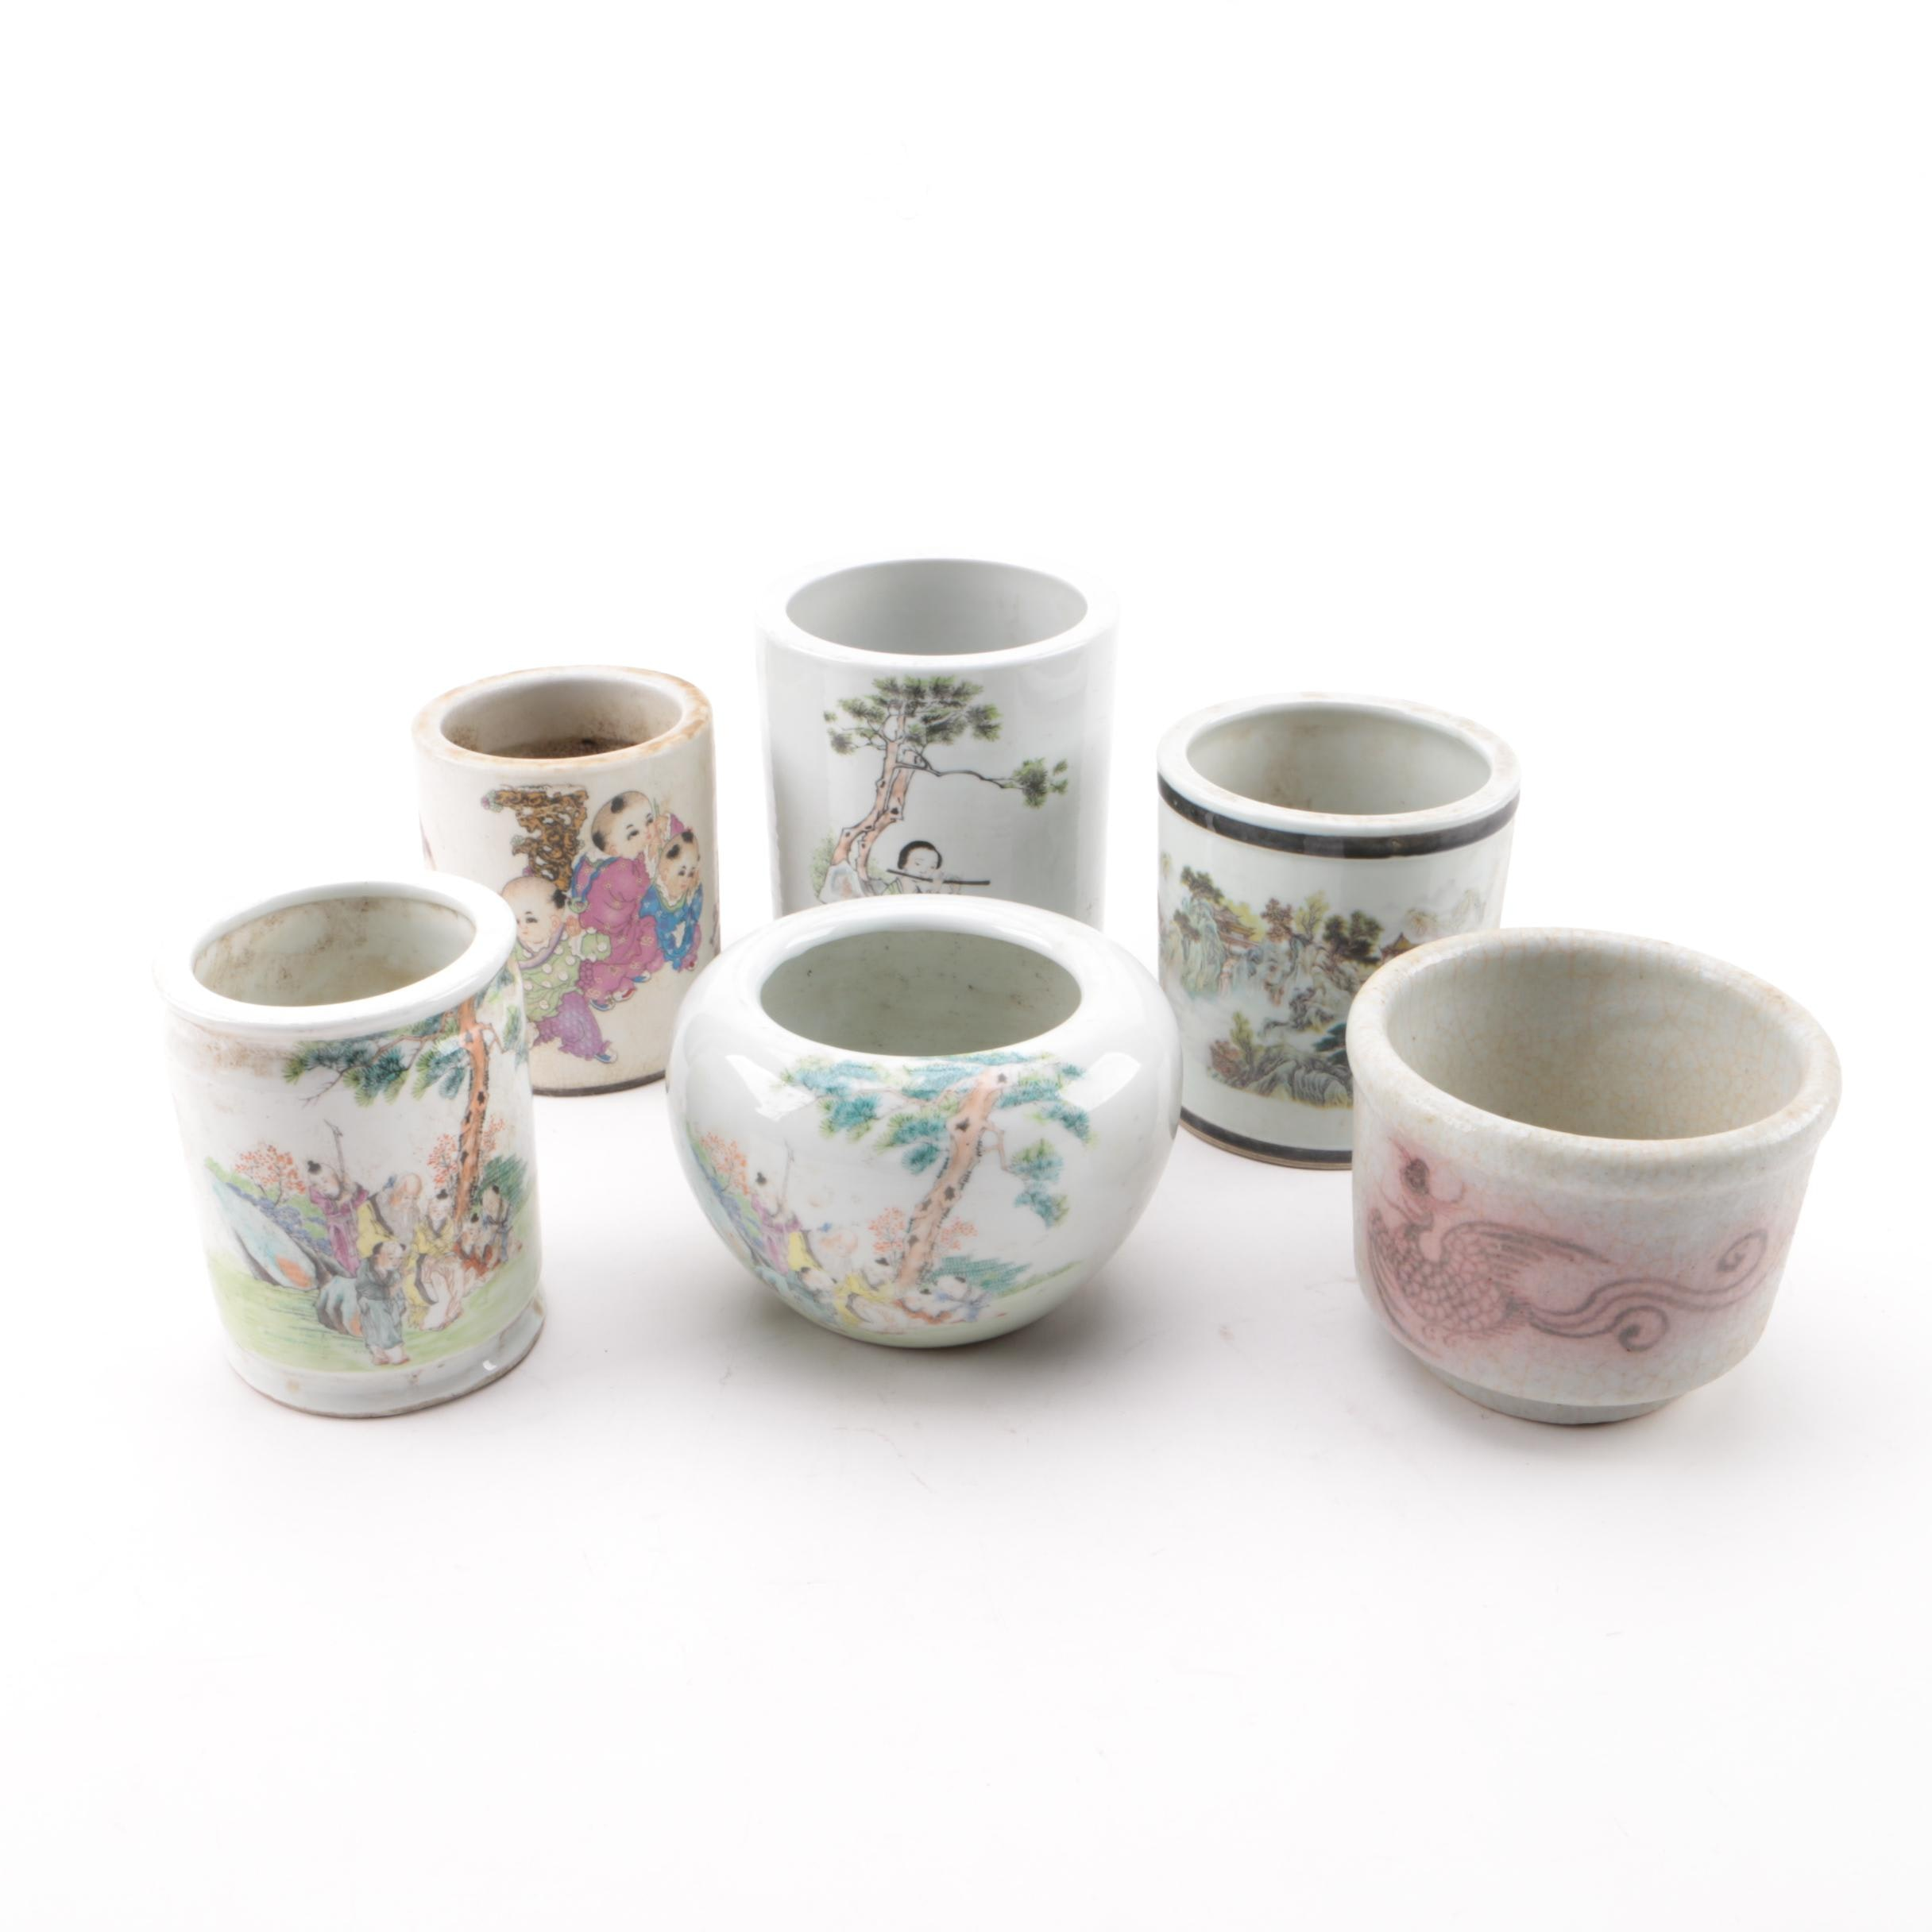 Contemporary Chinese Ceramic Vases and Planters